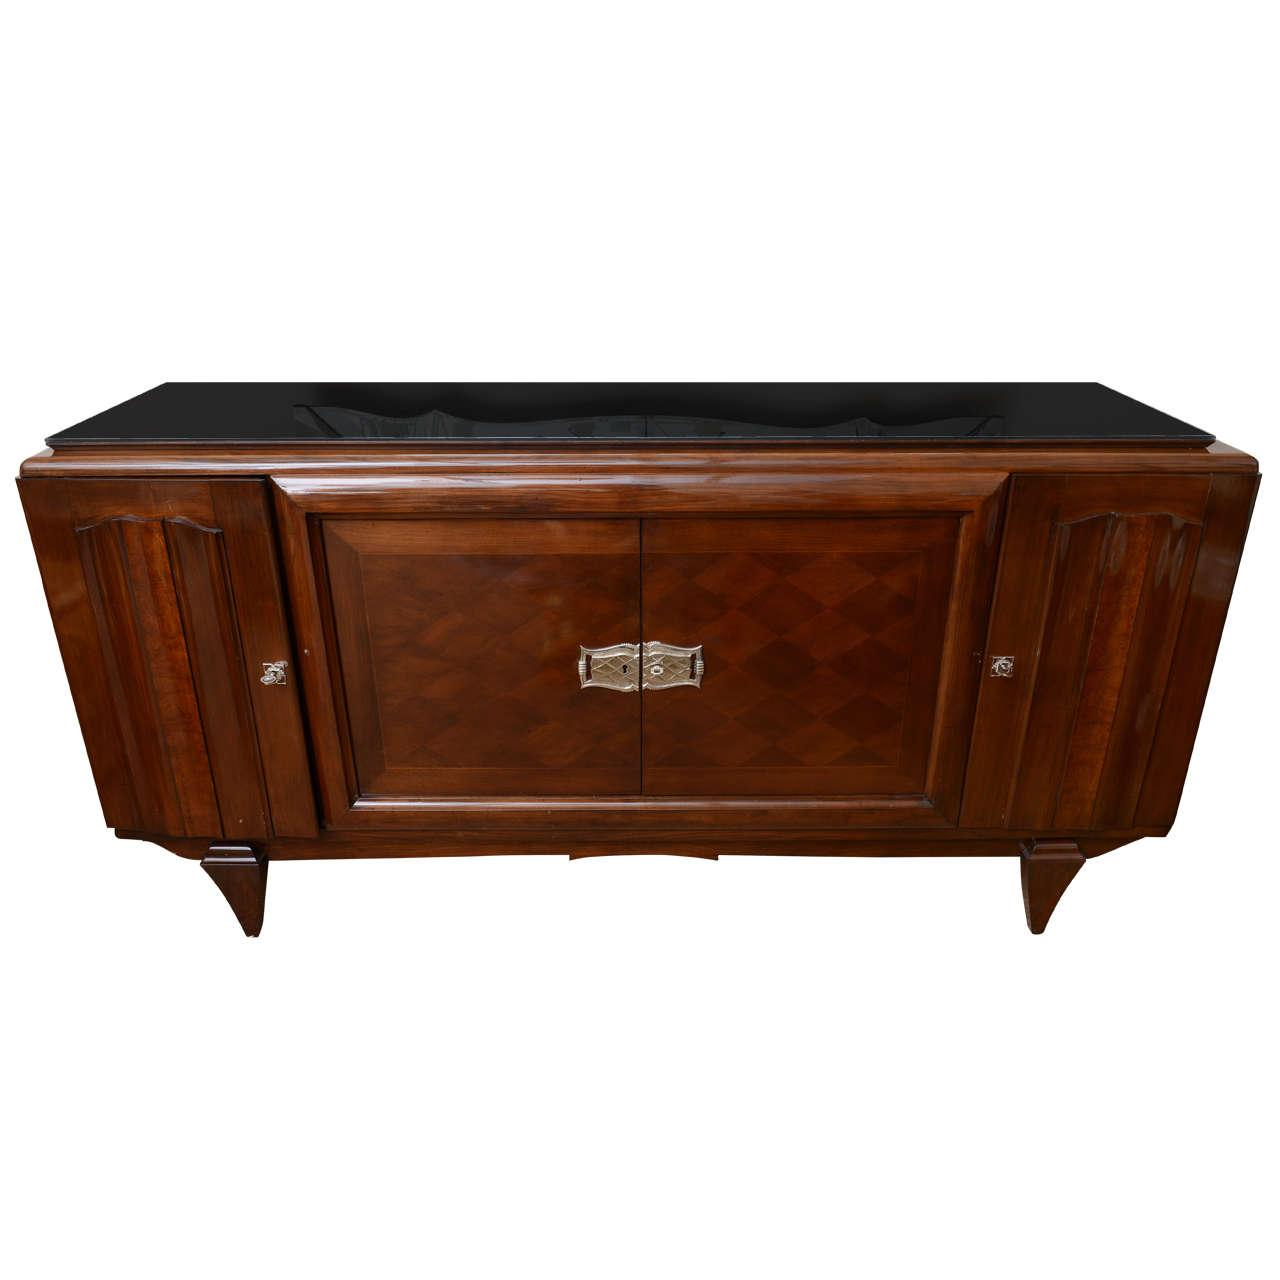 french art deco credenza sideboard chairish. Black Bedroom Furniture Sets. Home Design Ideas